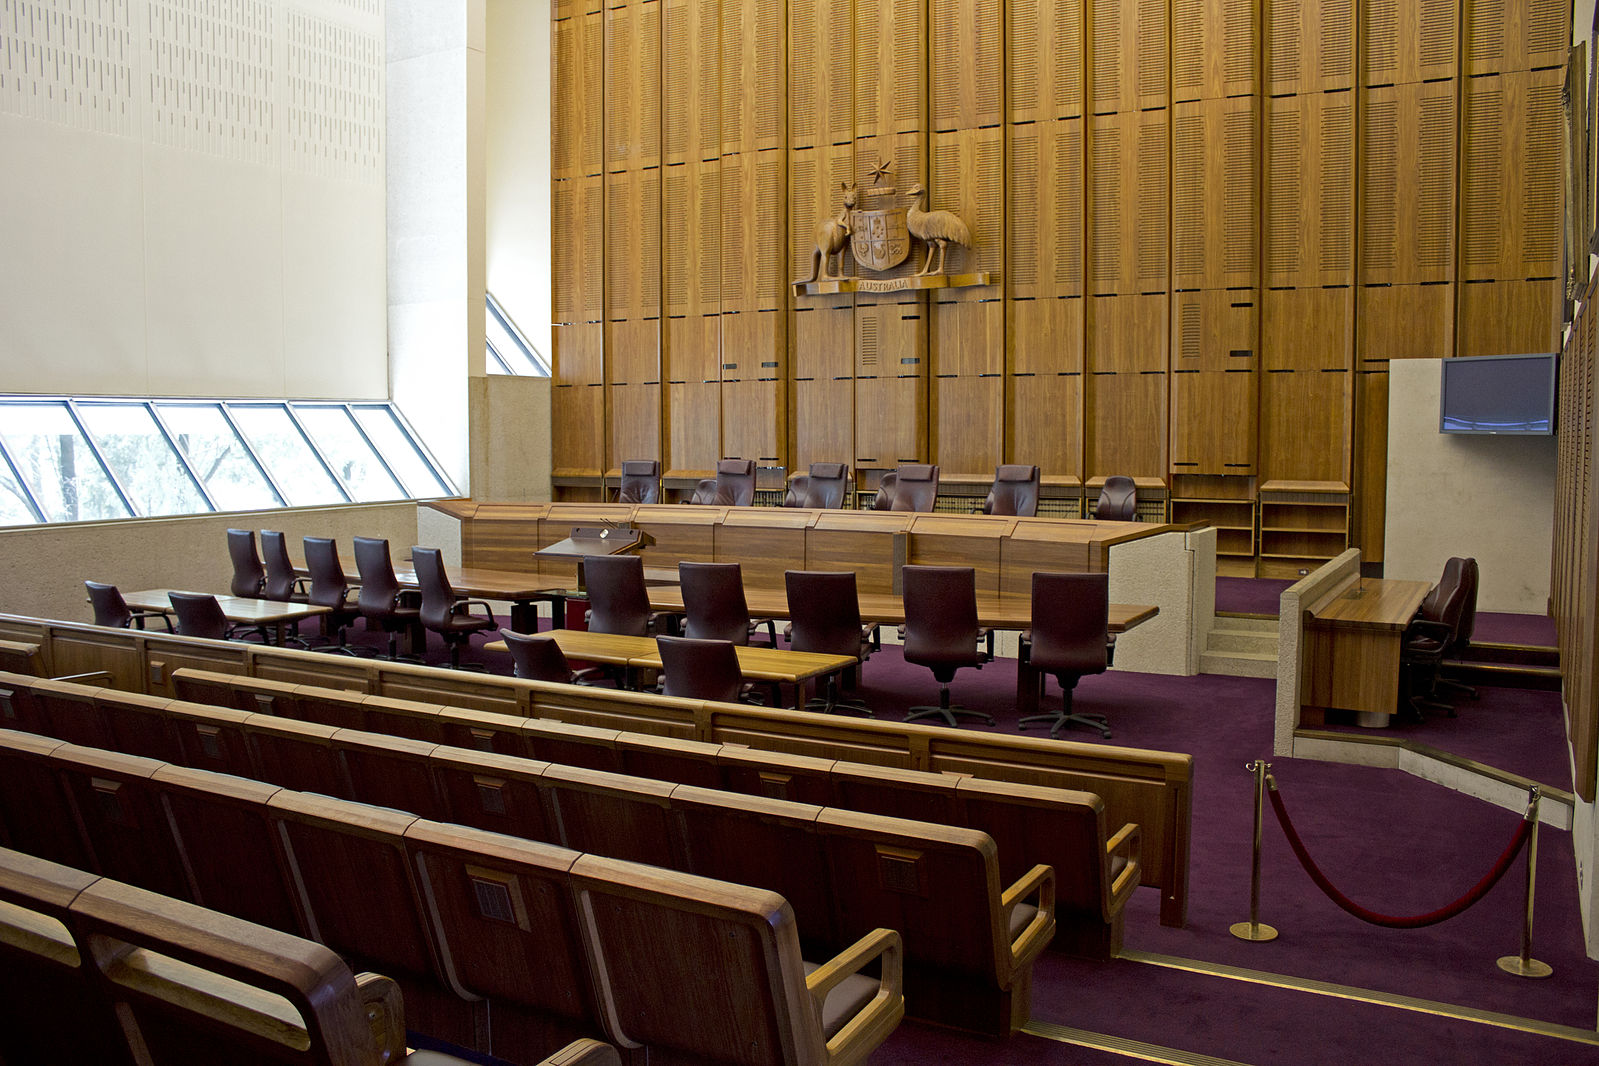 Court_2_at_the_High_Court_of_Australia.jpg